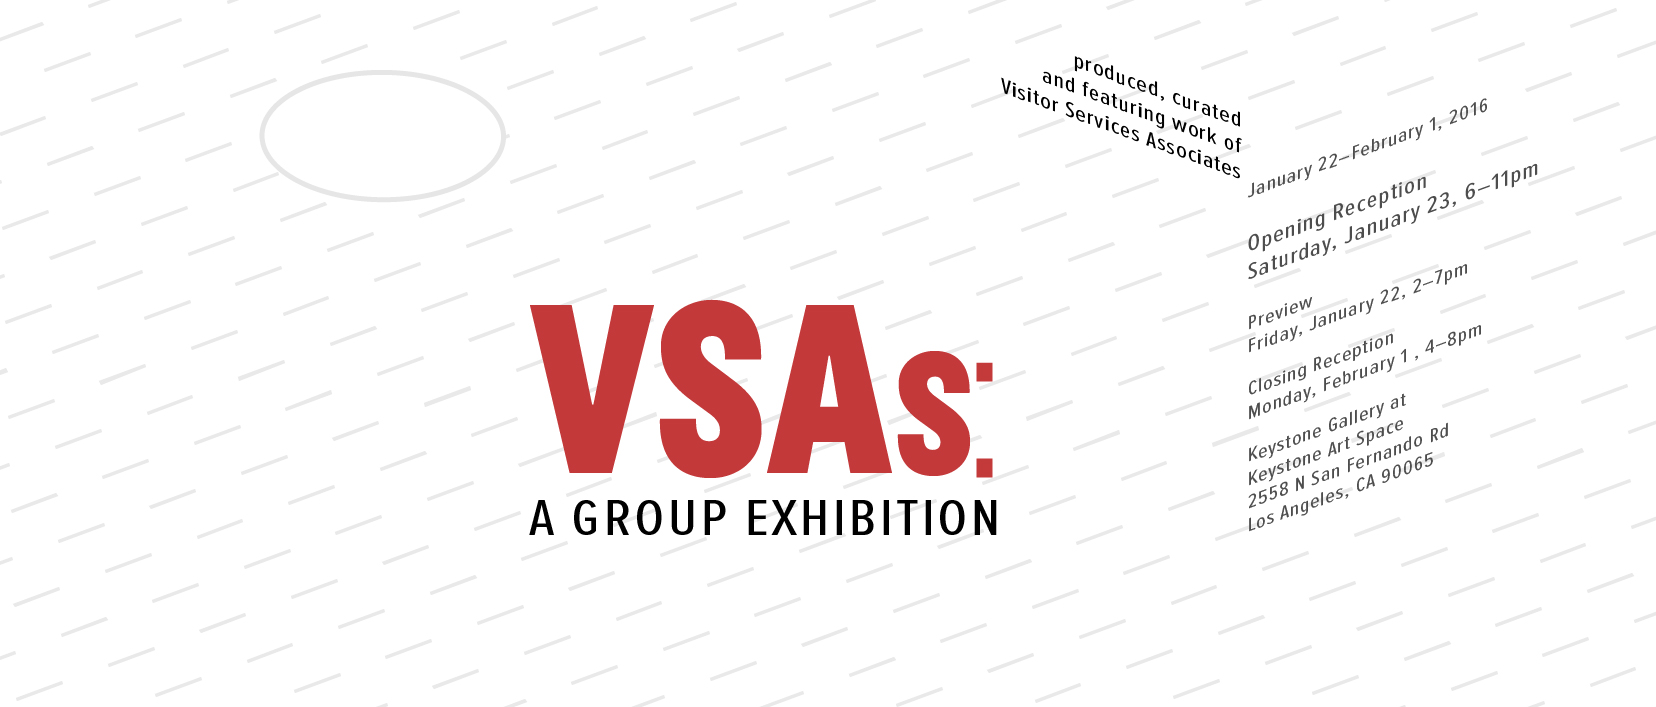 Image via  vsas: a group Exhibition